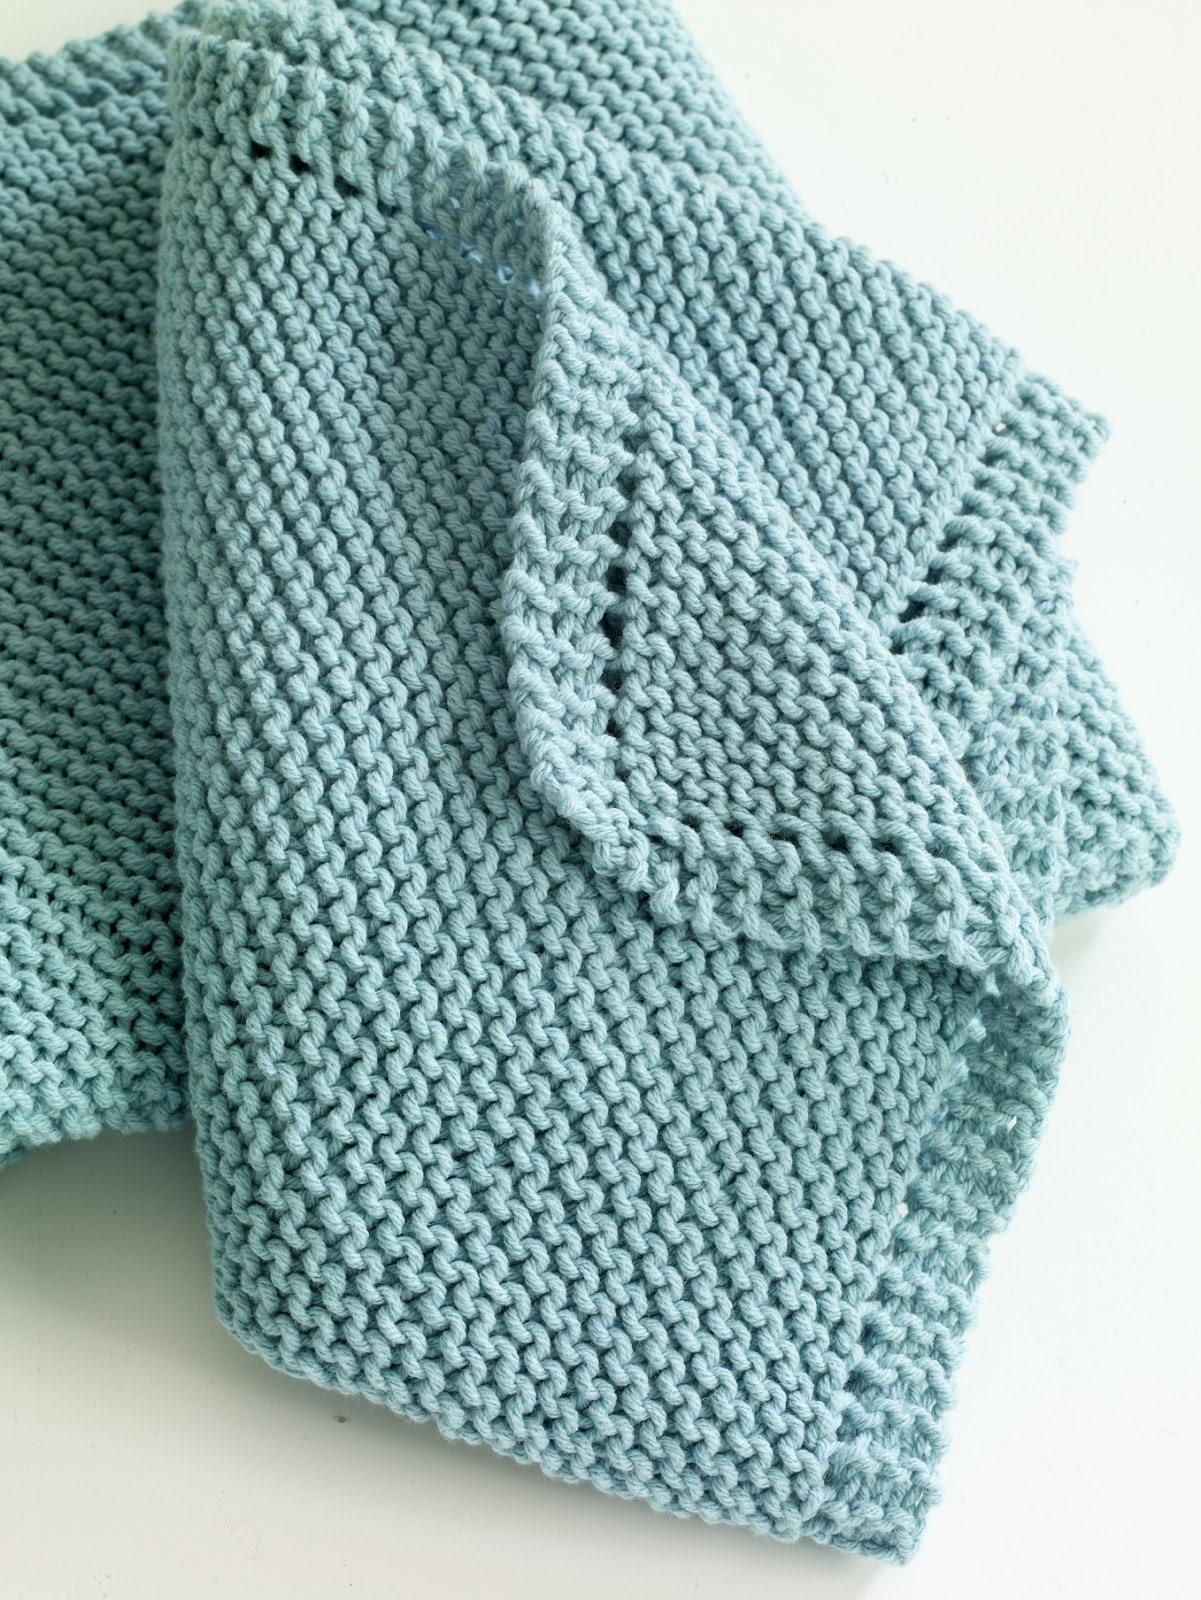 Free Knit Pattern For Baby Blanket : Serenity Knits